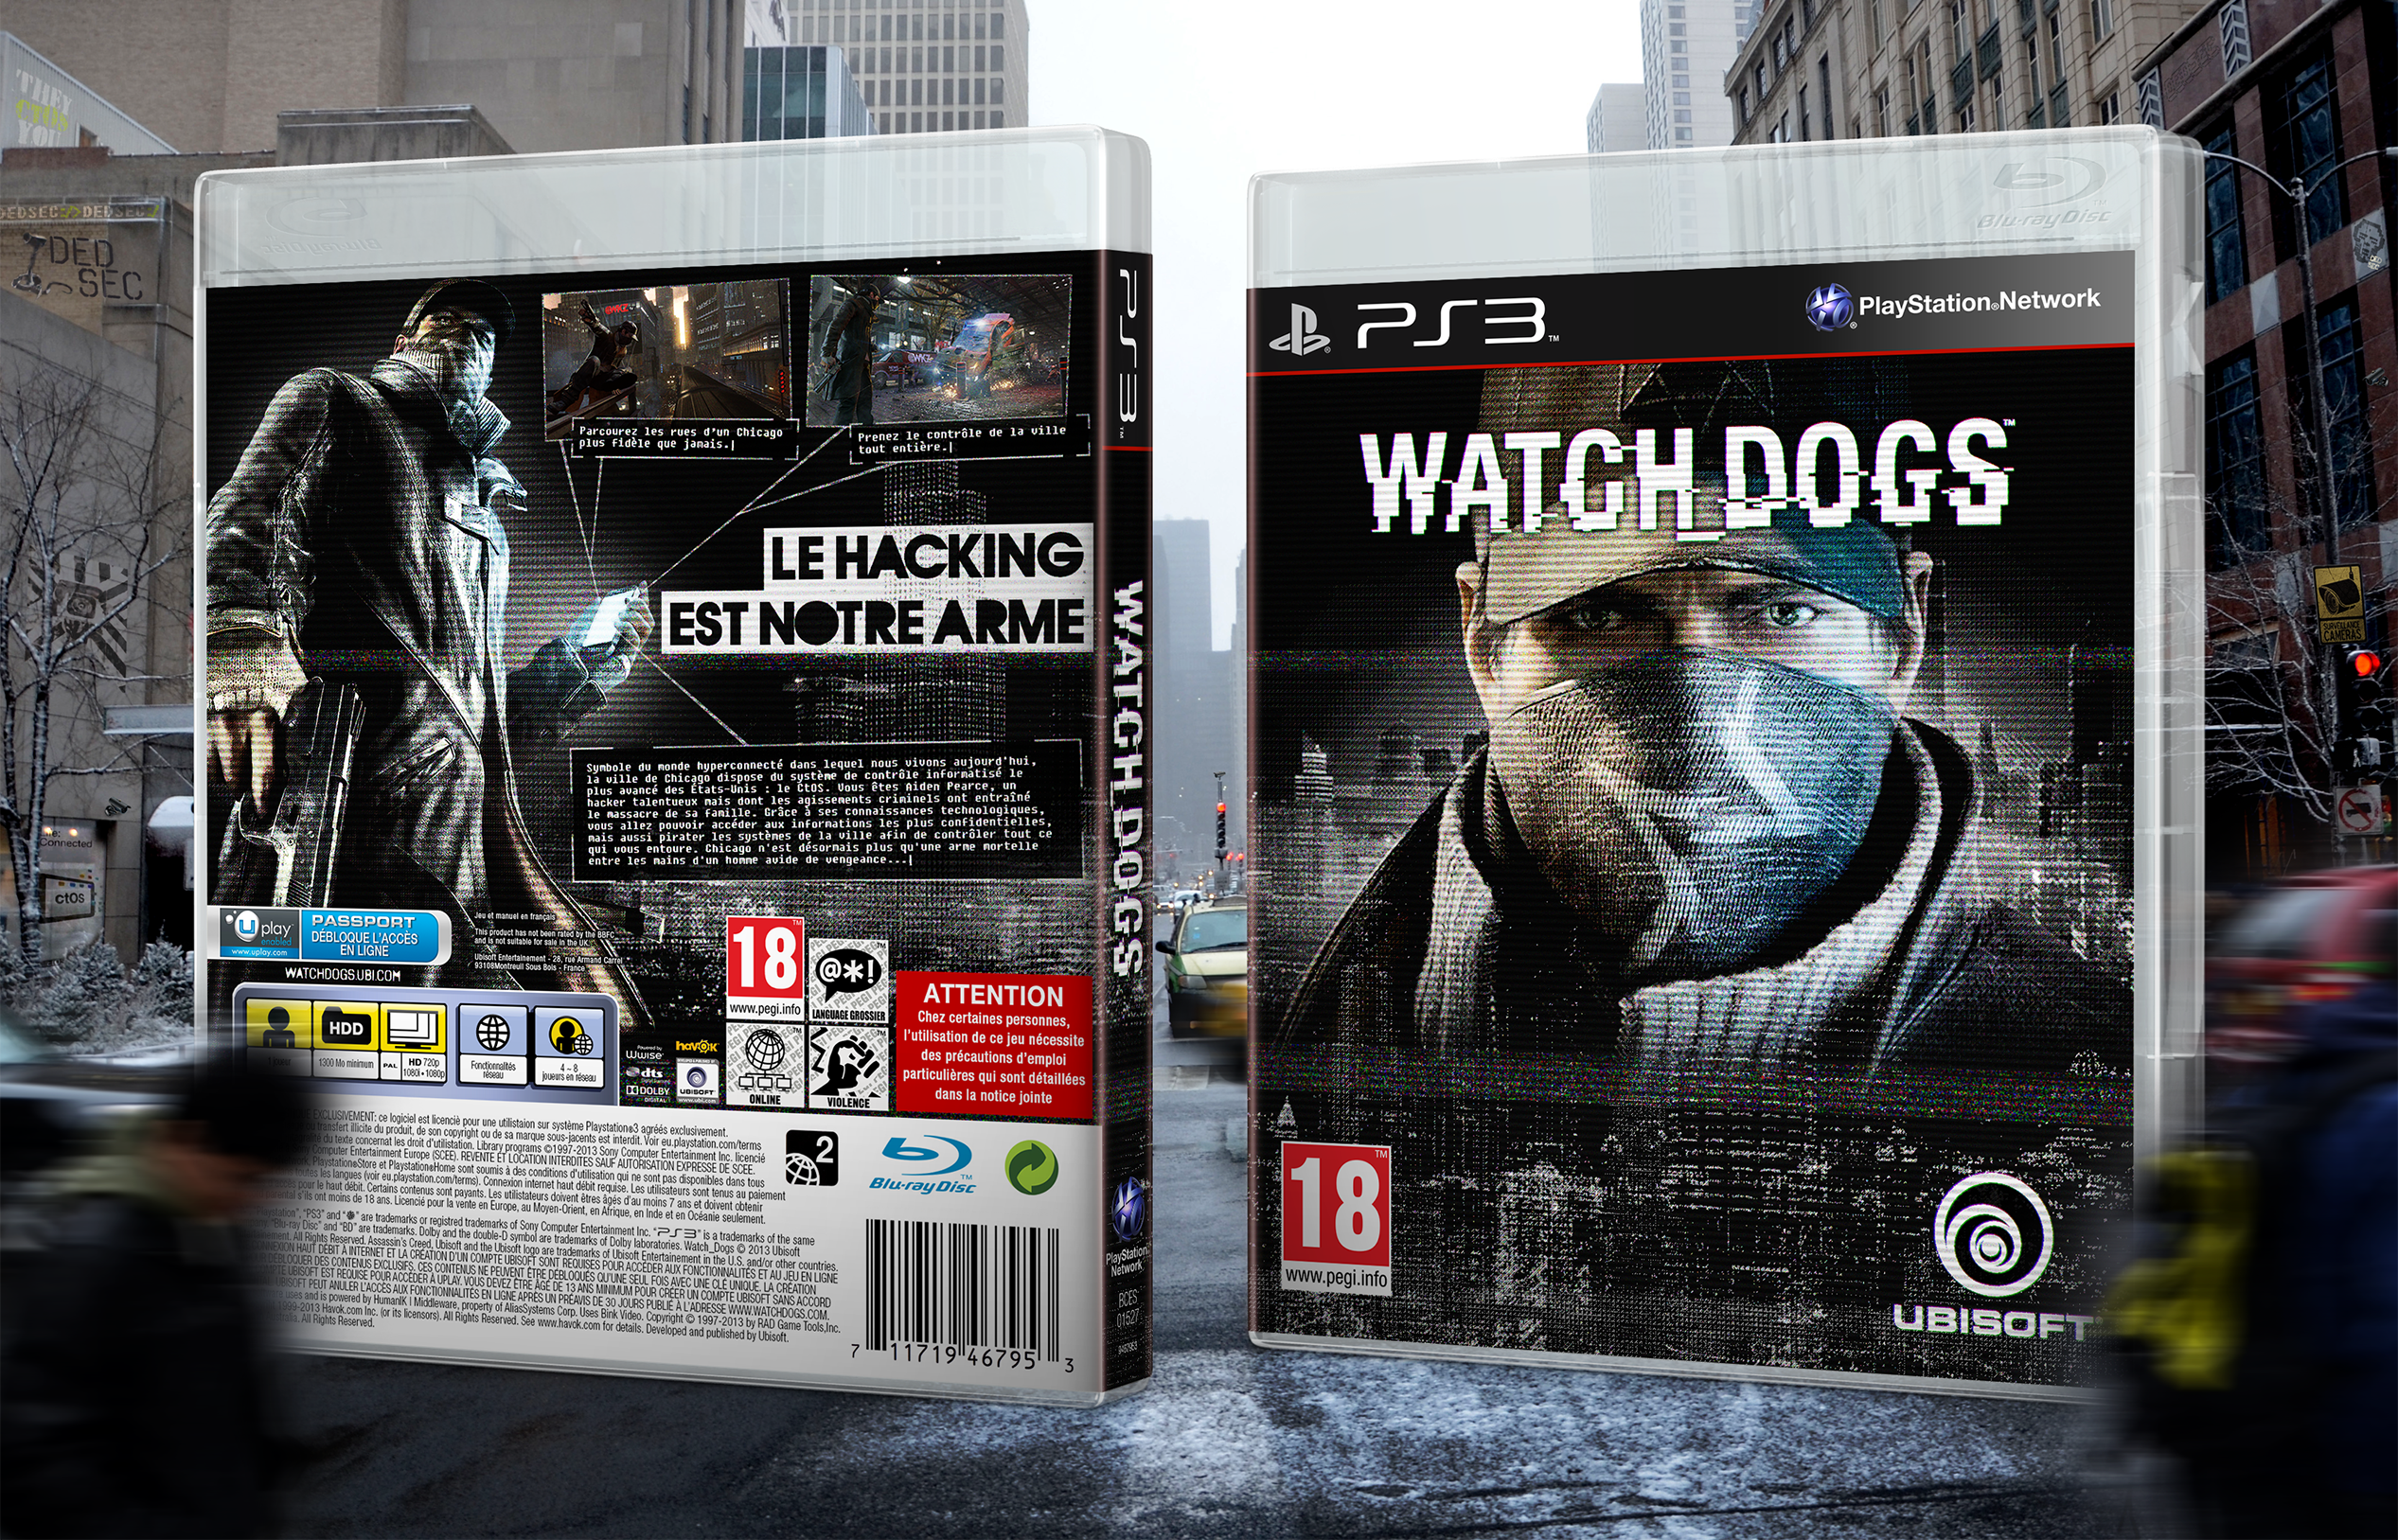 Watch_Dogs box cover